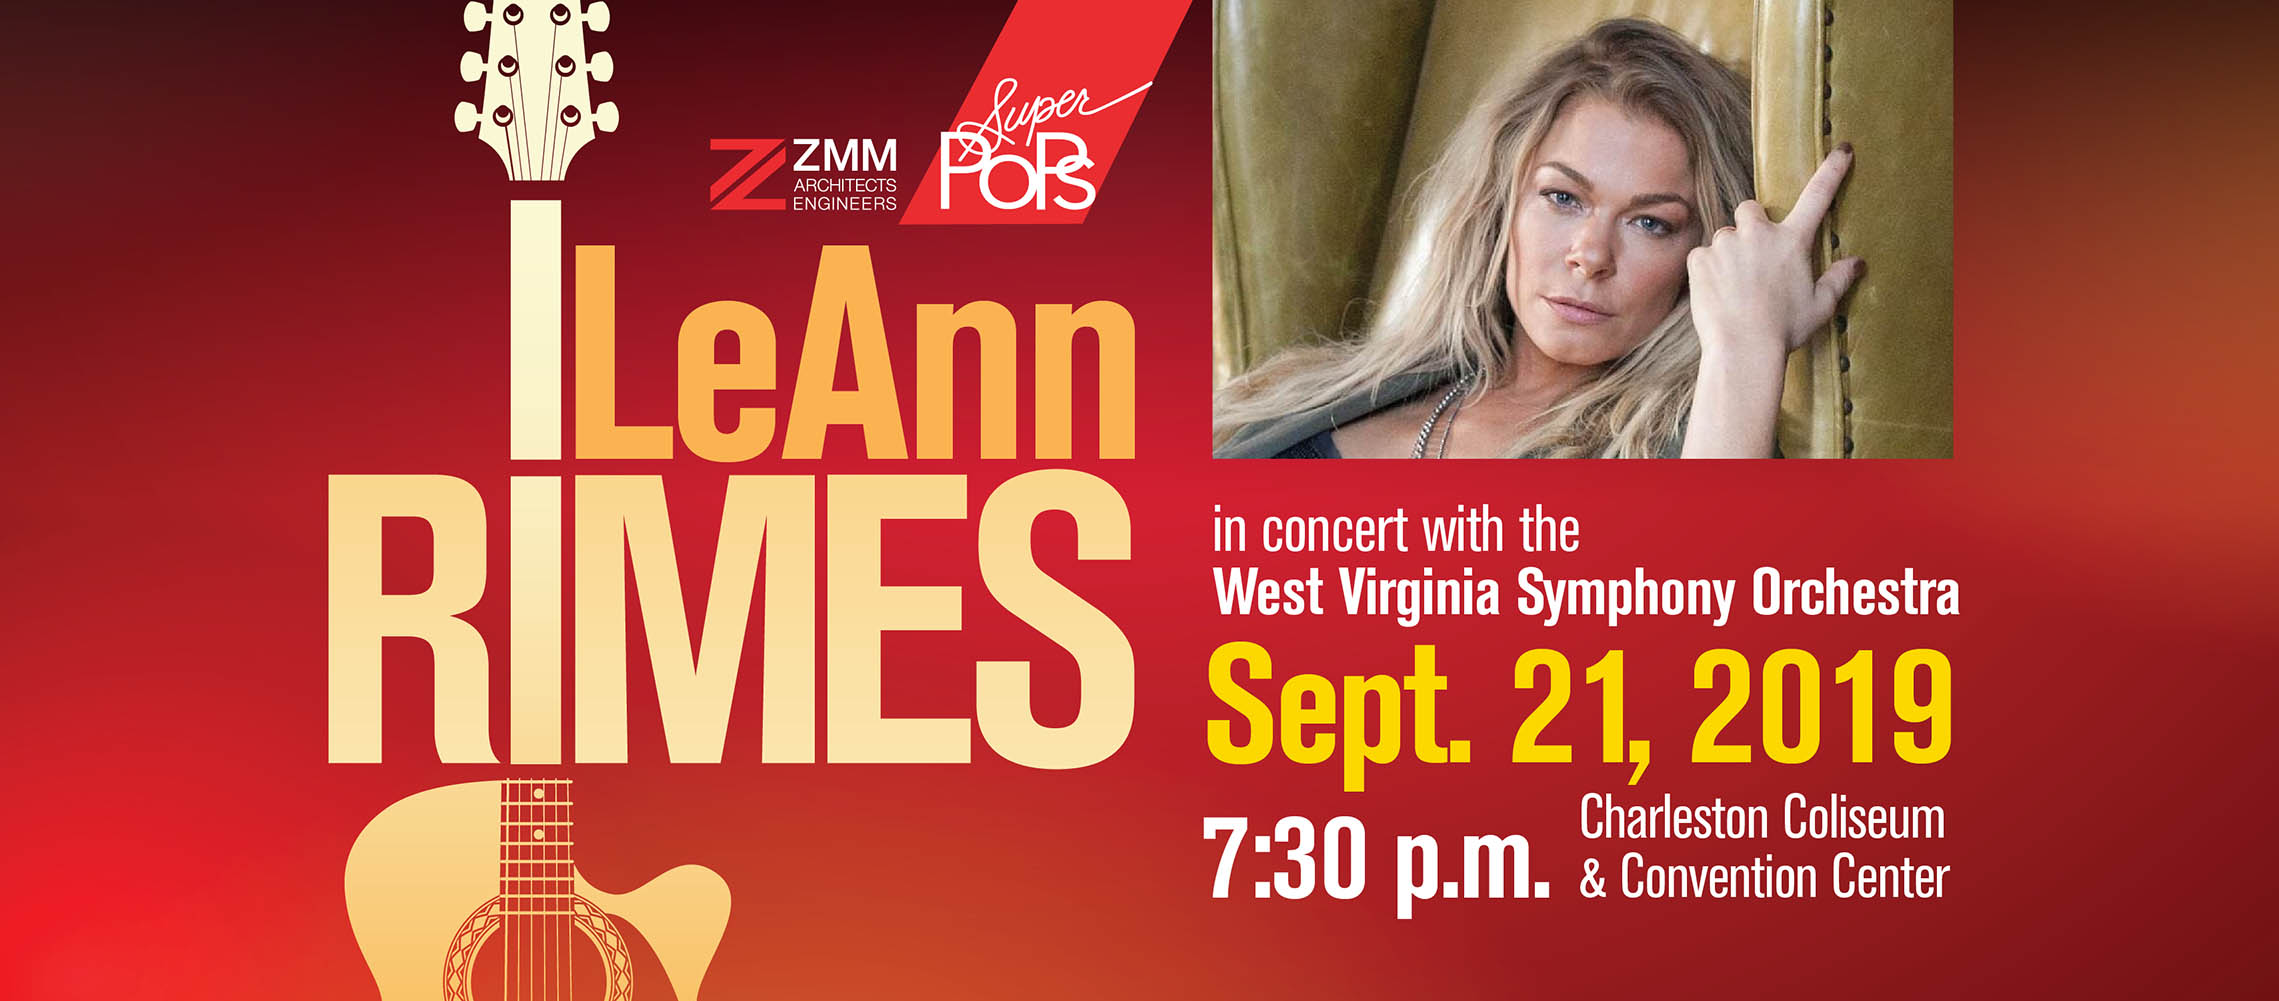 WVSO_FACEBOOK_LeAnnRimes_Cover_With_Date.jpg